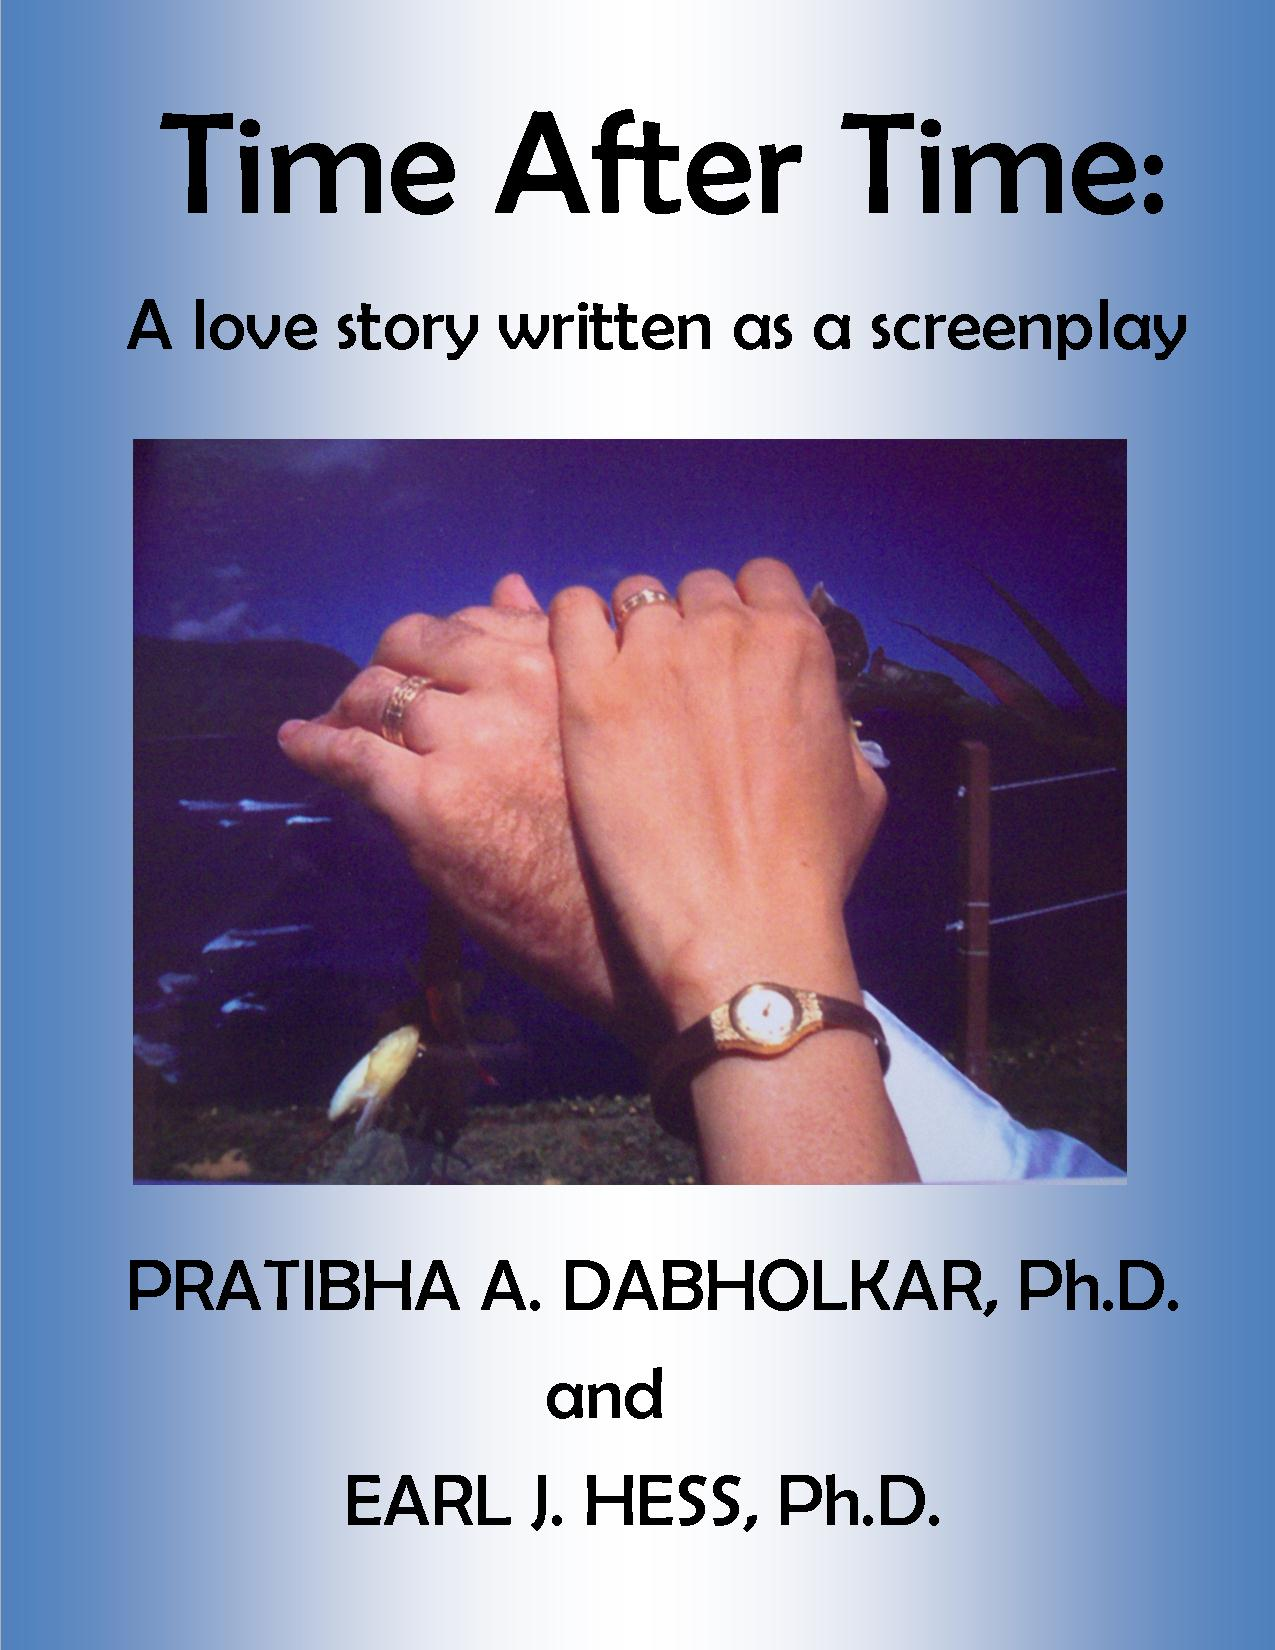 Time After Time: A love story written as a screenplay